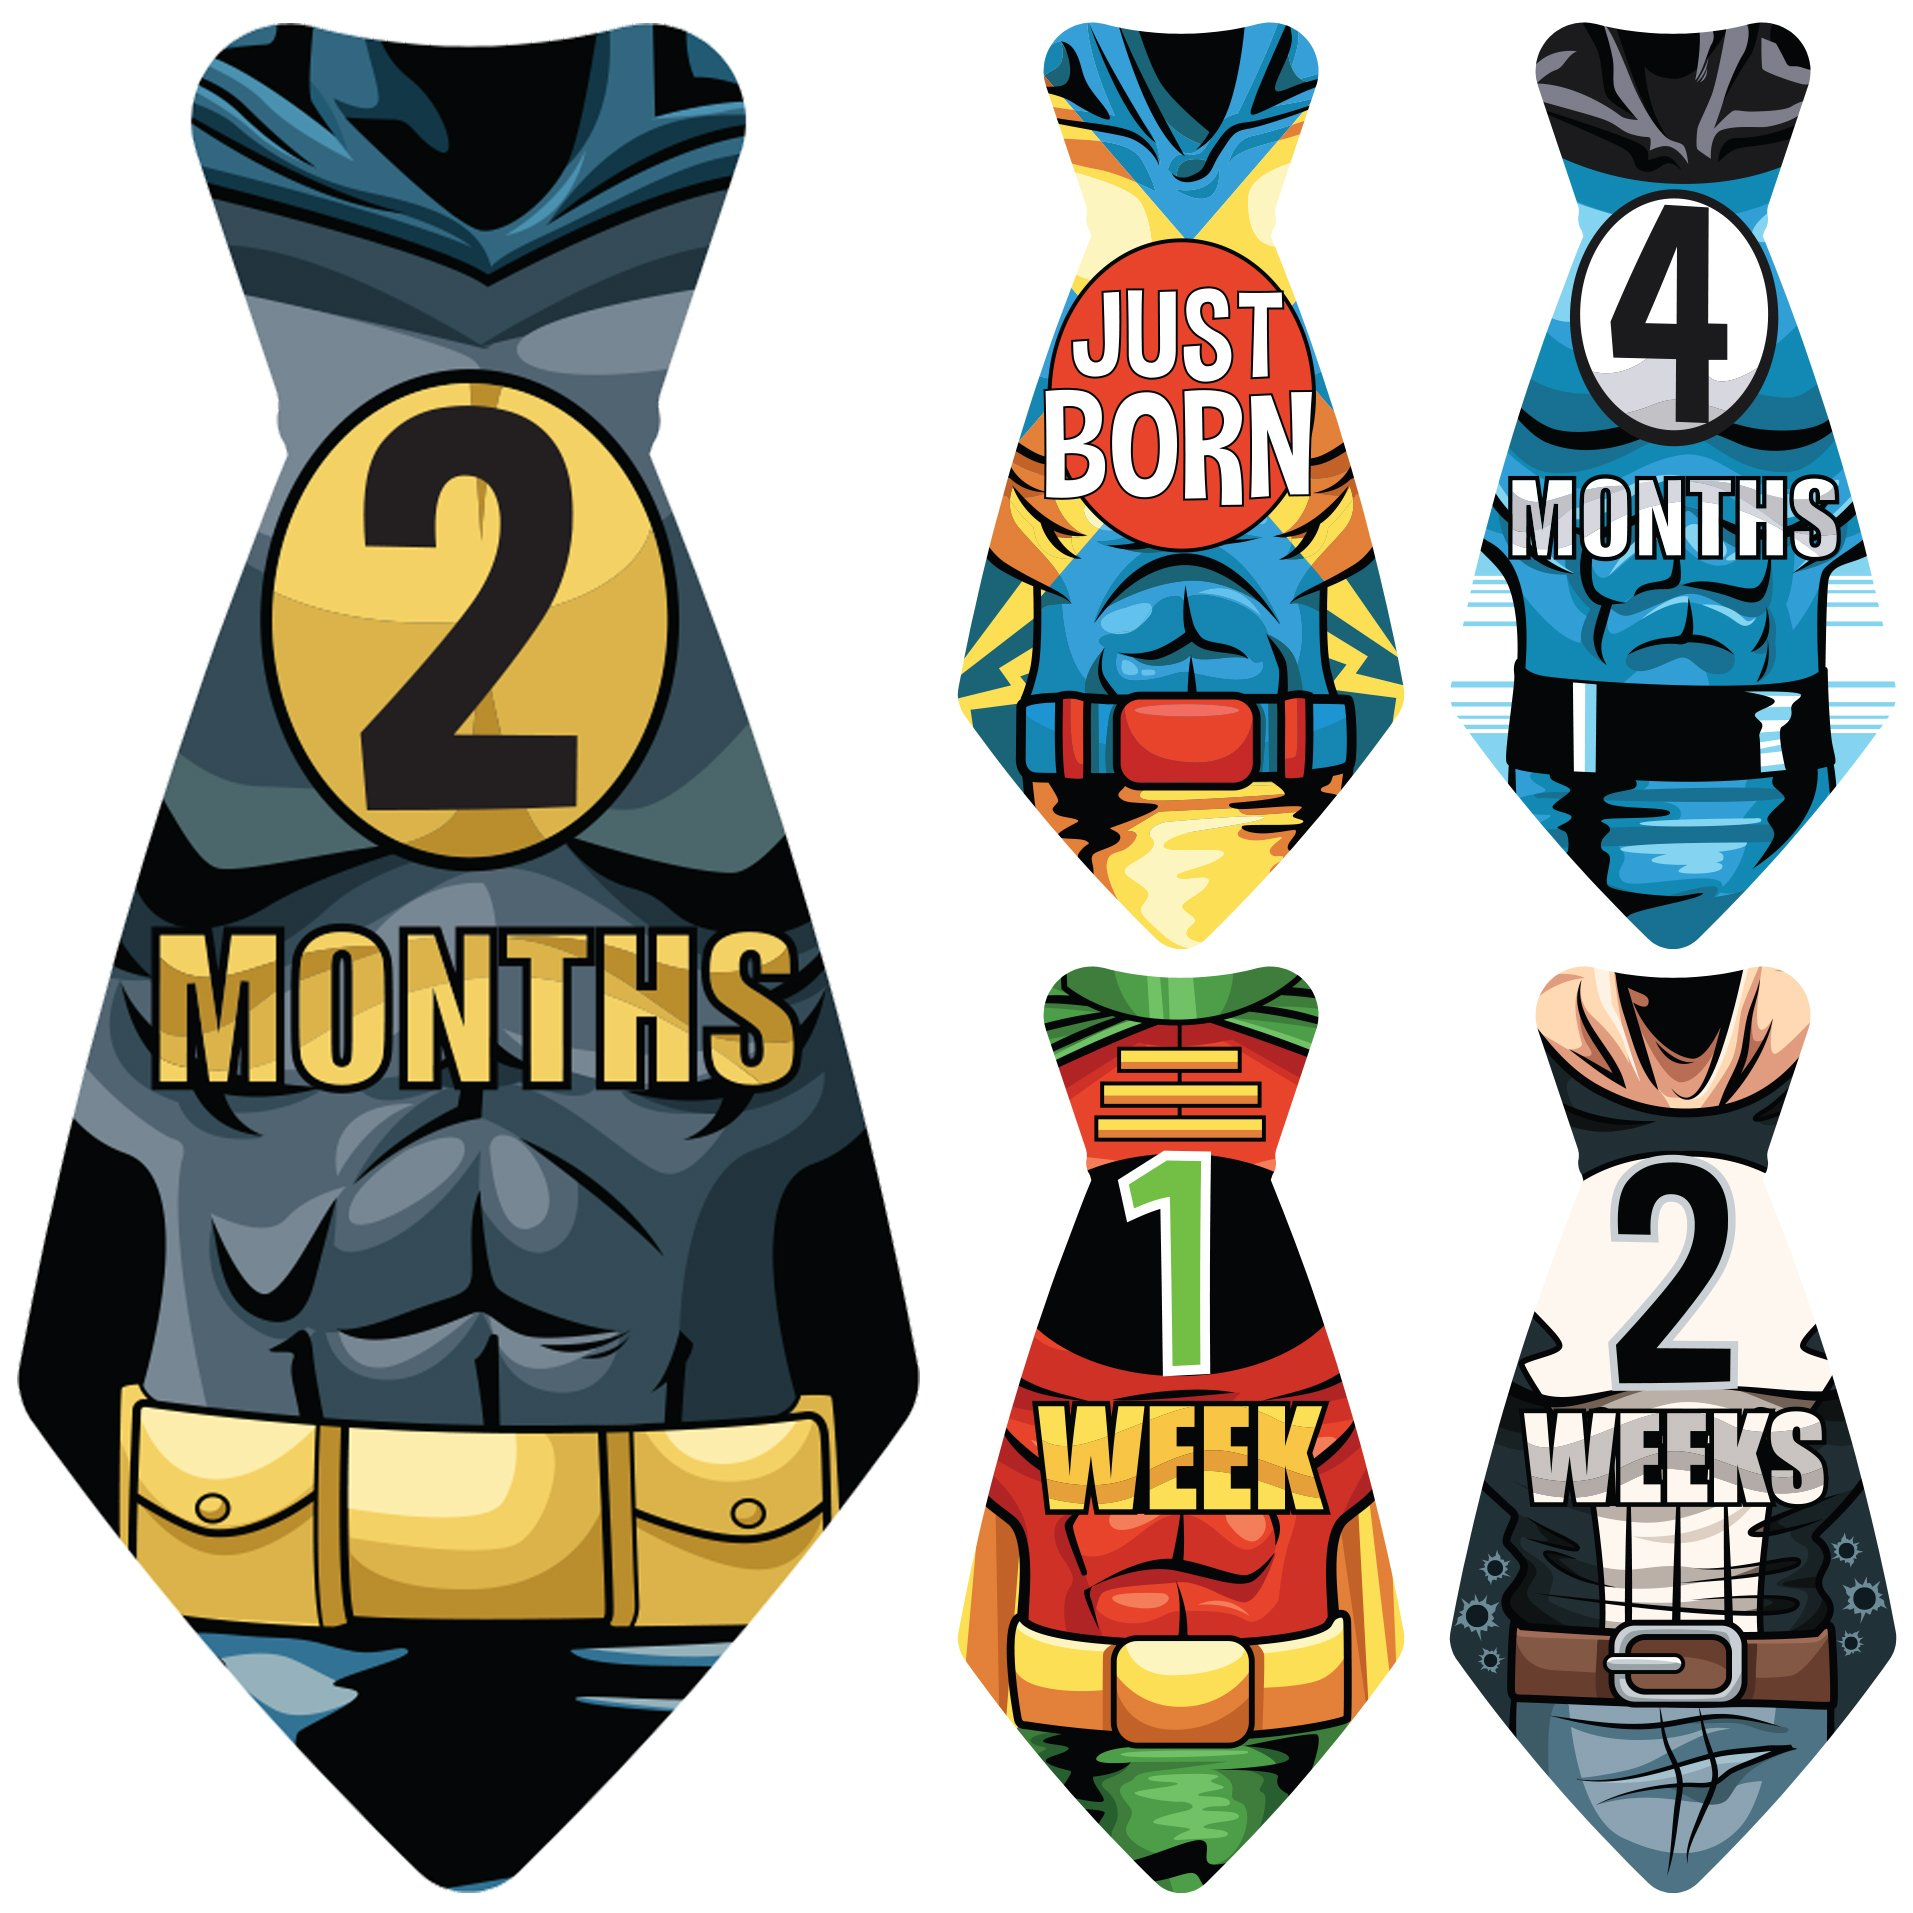 Original Stick'Nsnap (TM) 17 Baby Monthly Necktie Onesie Stickers -''Happy Heroes'' (TM) Milestones for 12 Months +5 Bonus Milestones - Great Baby Shower Gift! by Stick'Nsnap